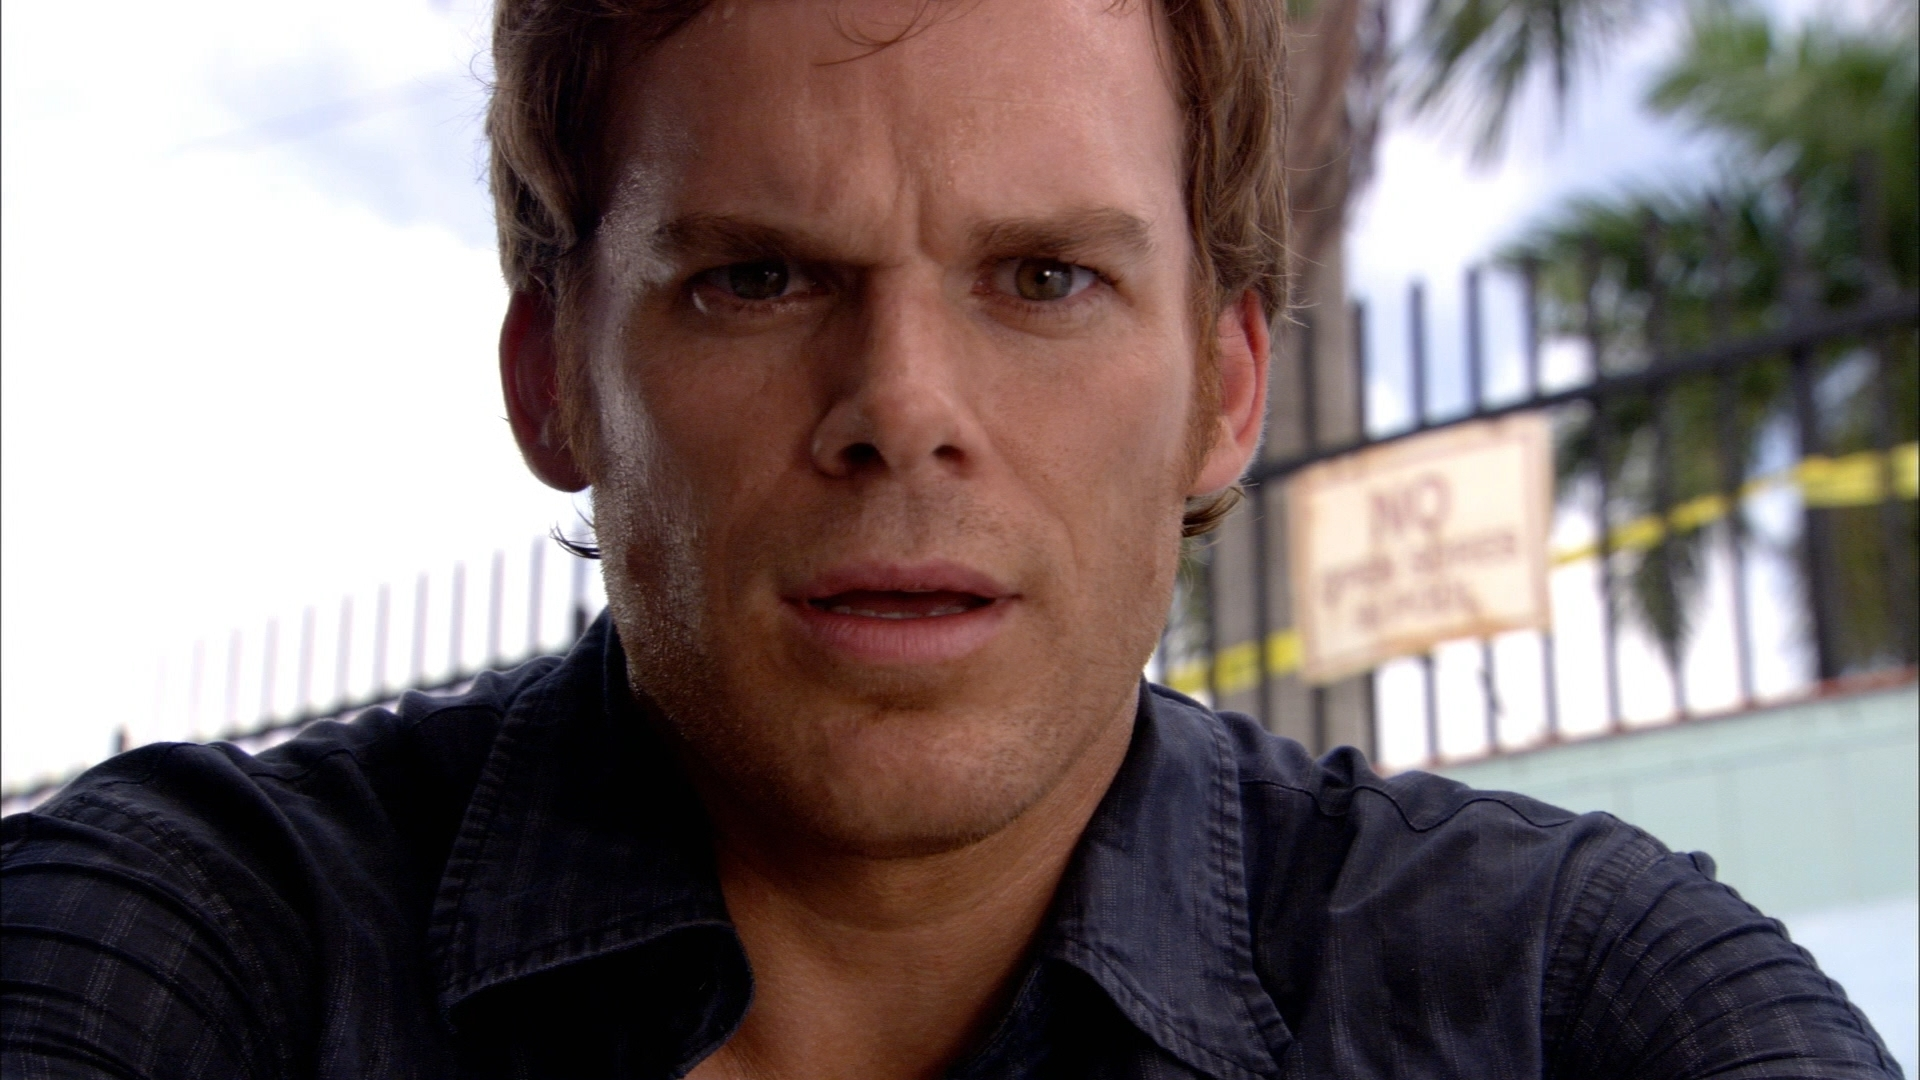 [Image: Screen-Shot-1-Dexter-dexter-7292657-1920-1080.jpg]